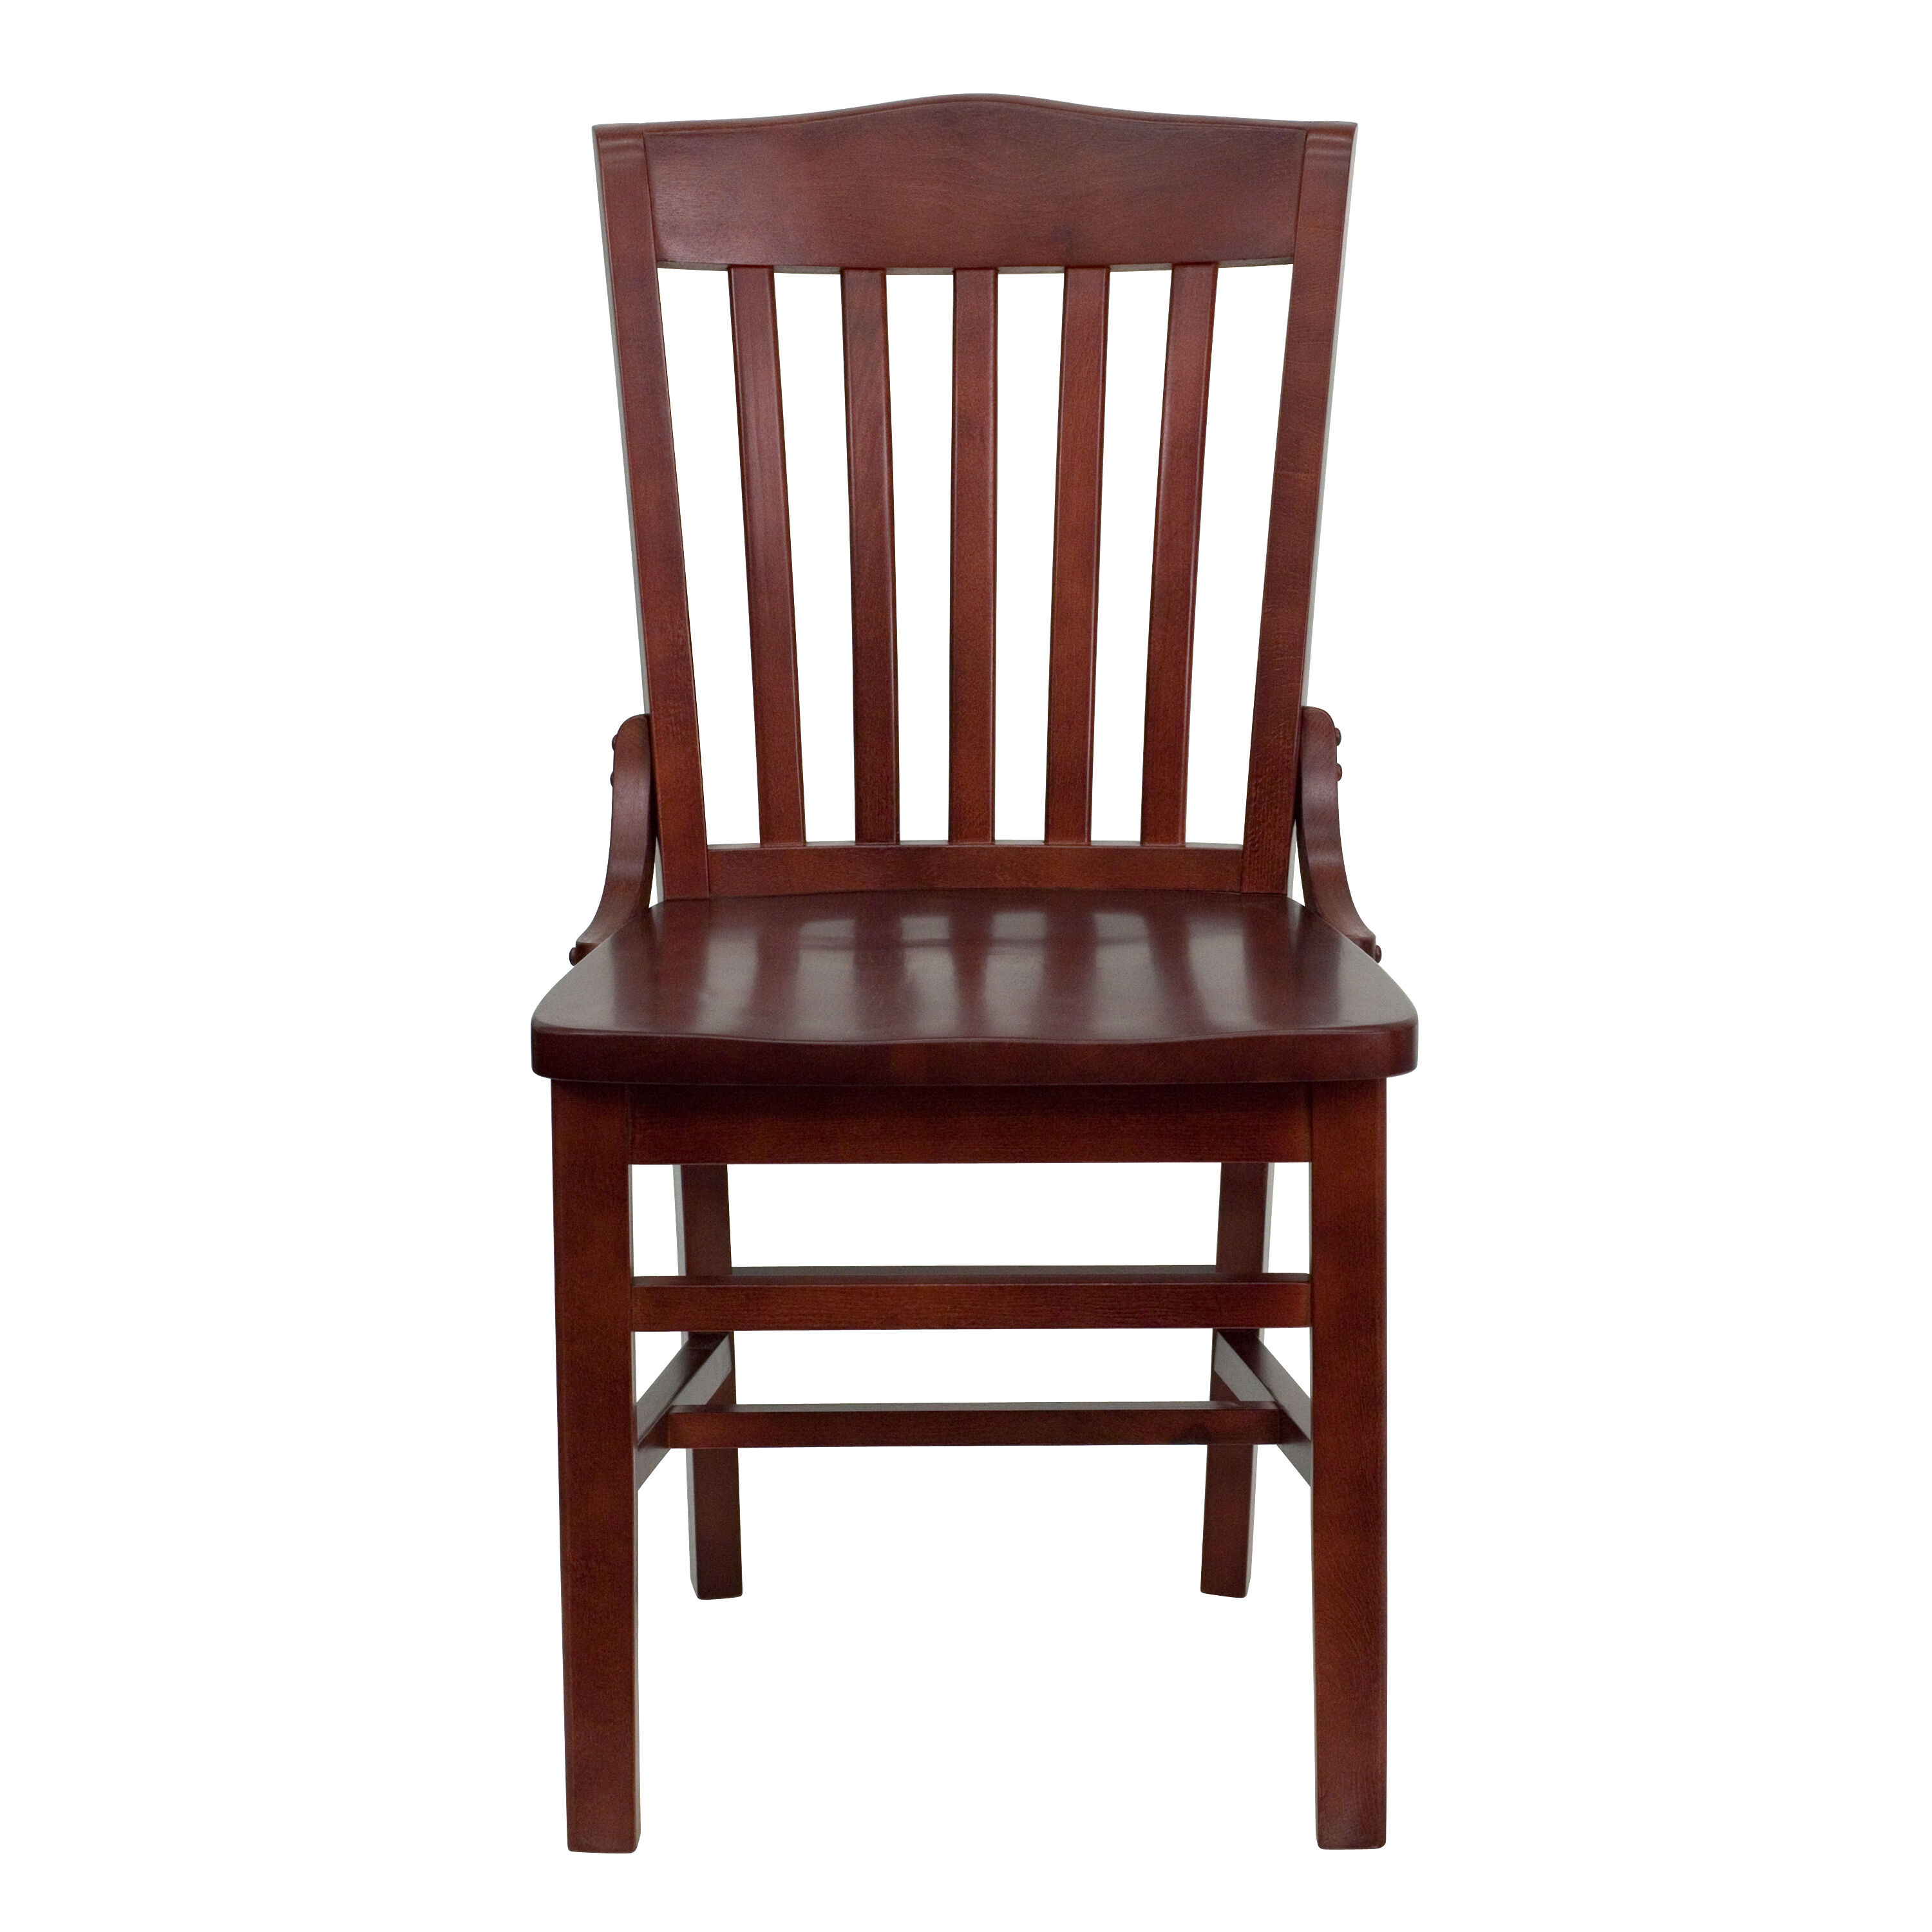 Restaurant Chairs T And D Restaurant Equipment Bfdh 7992mbk Tdr Bizchair